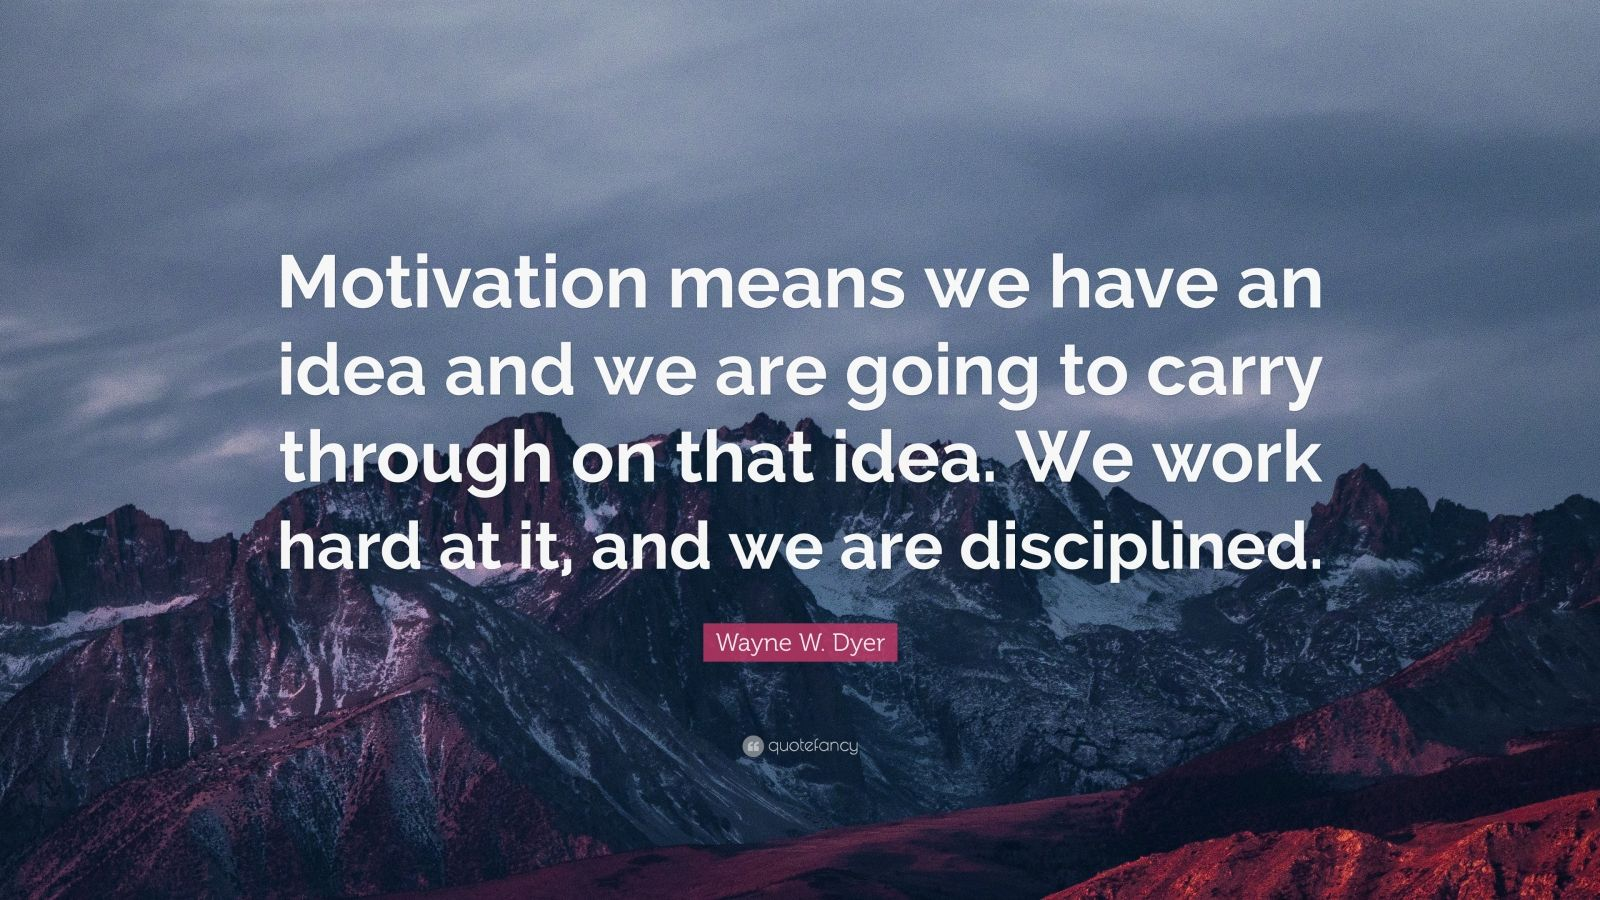 "Wayne W. Dyer Quote: ""Motivation means we have an idea and we are going to carry through on that idea. We work hard at it, and we are disciplined."""